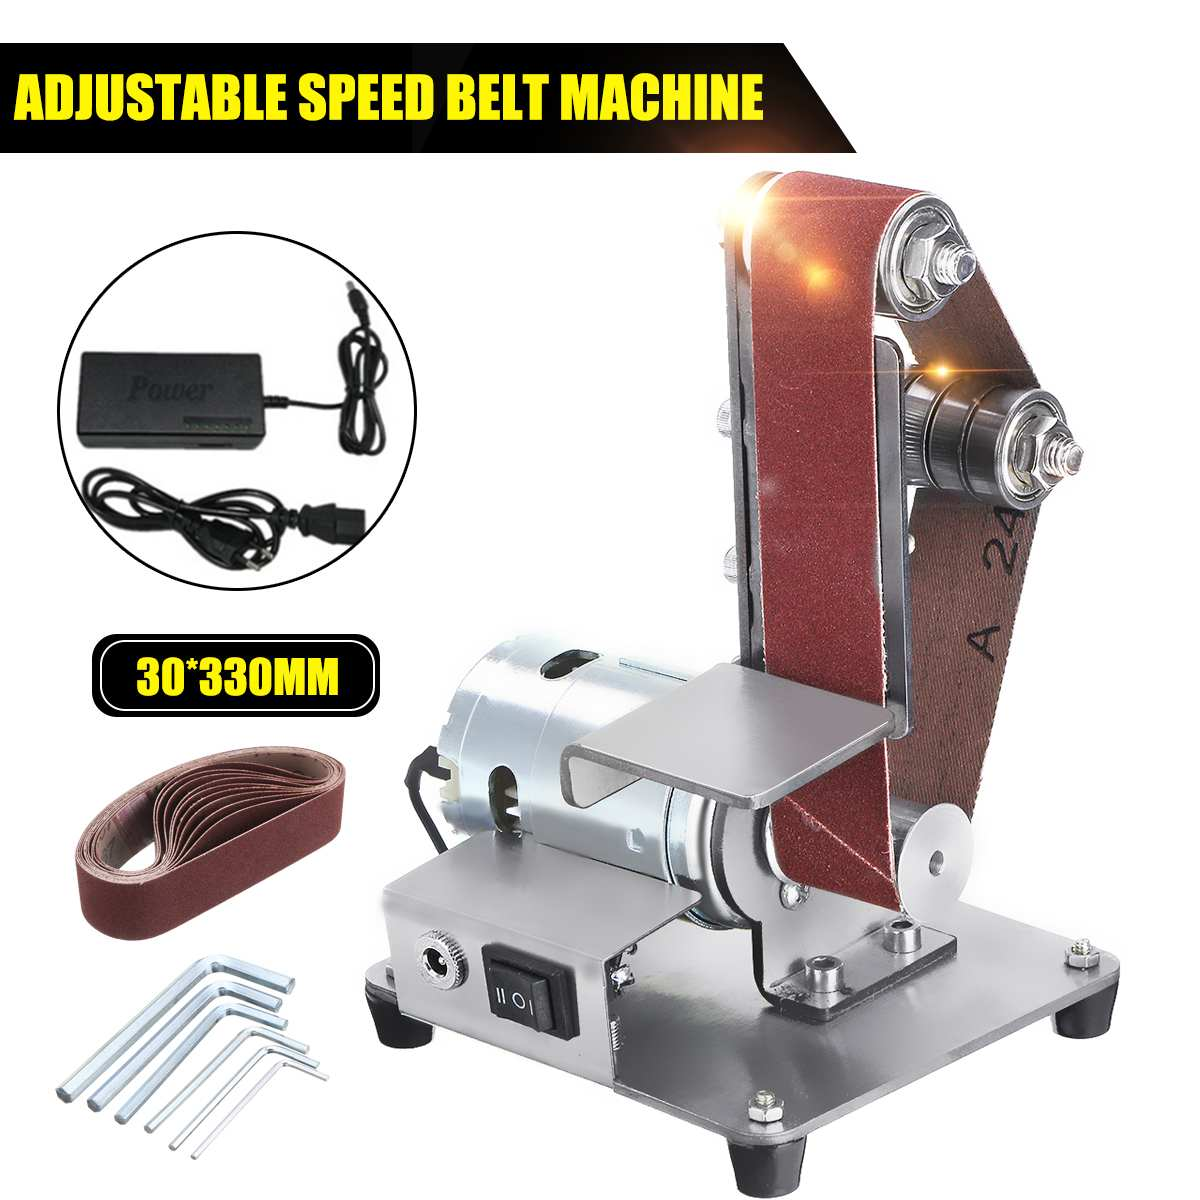 Mini Electric Belt Machine <font><b>Sander</b></font> 350W Sanding Grinding Polishing Machine Abrasive Belt Grinder Polisher Cutter Edges Power <font><b>Tool</b></font> image